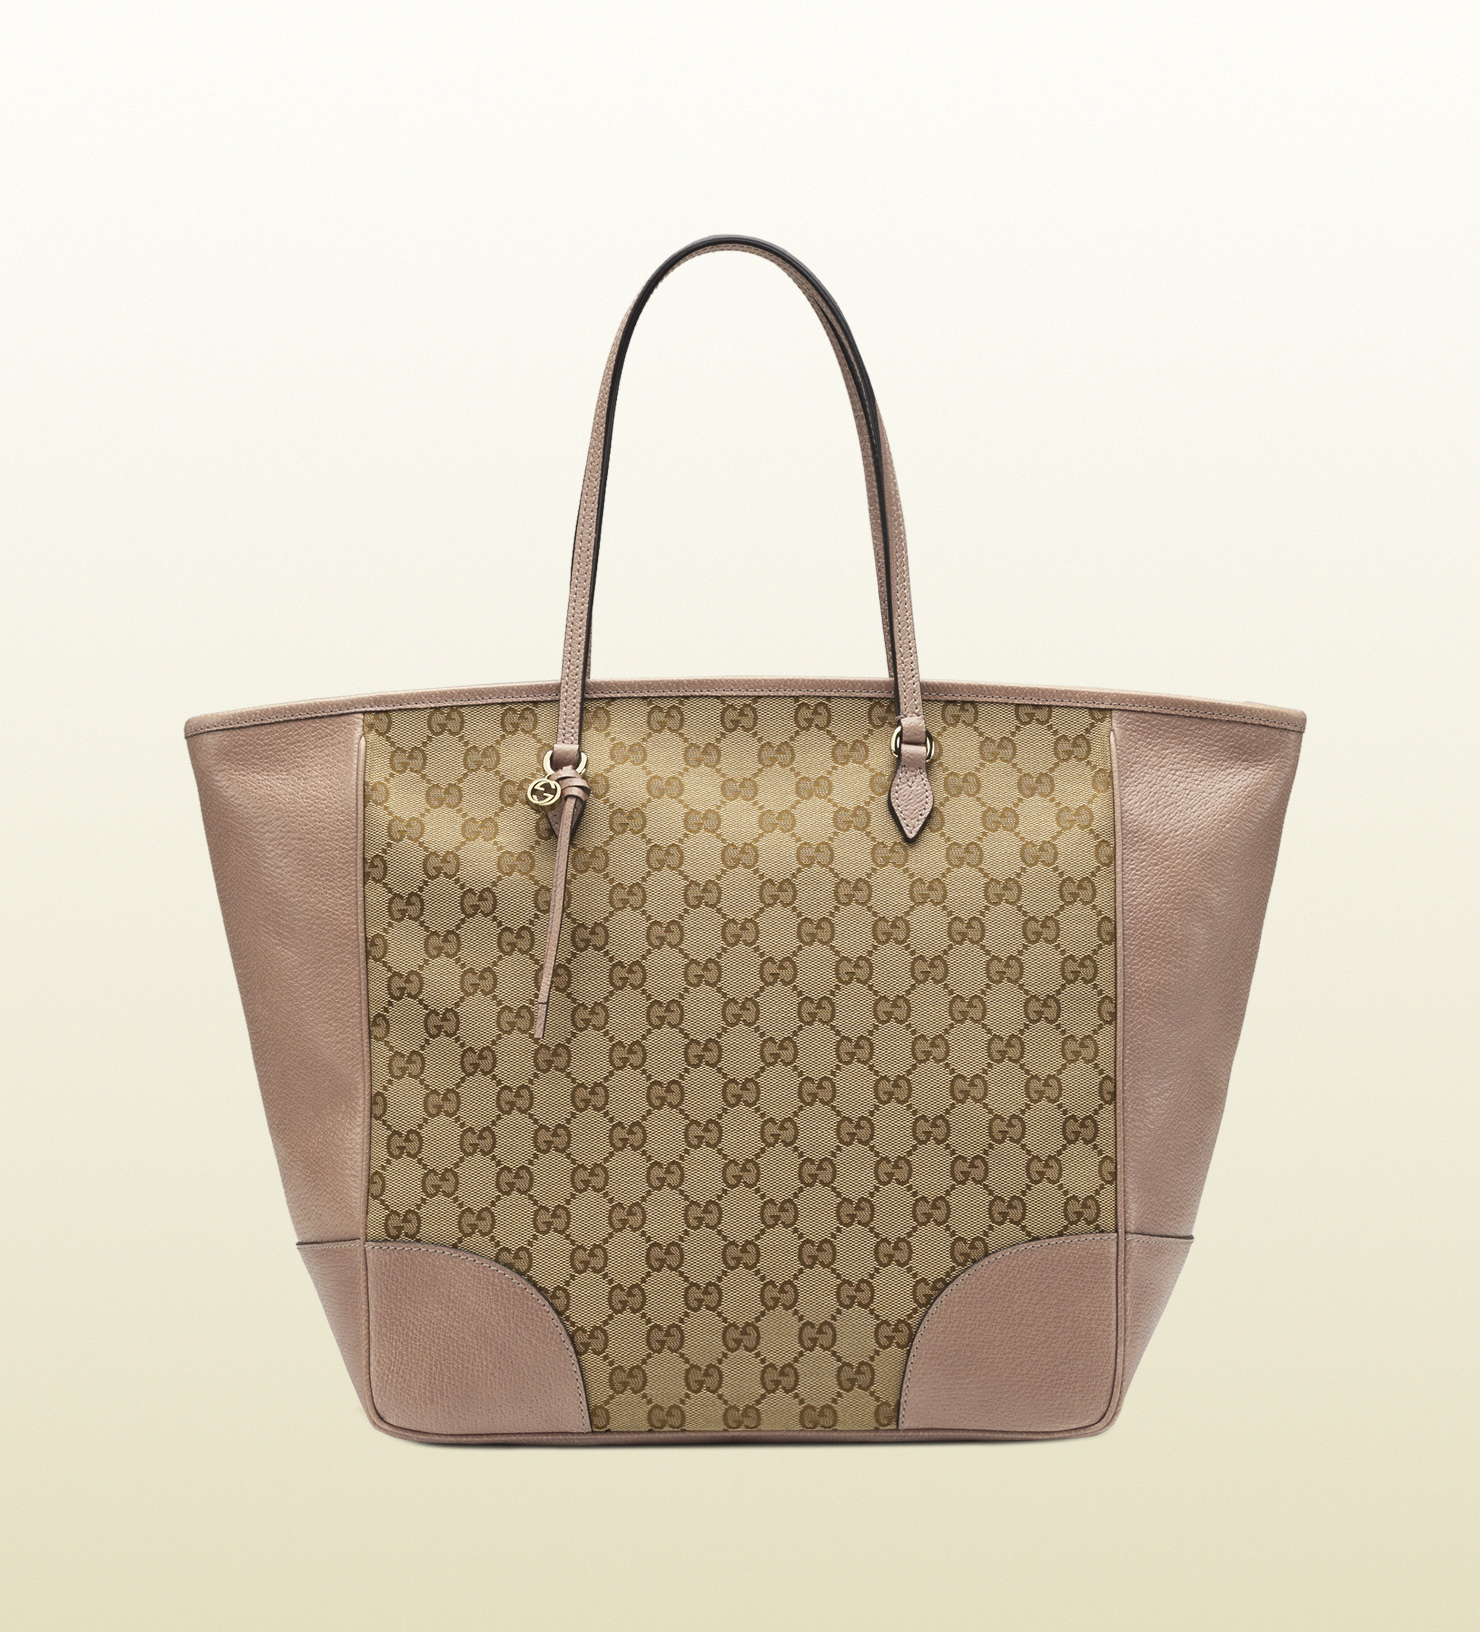 157edcdf055 Lyst - Gucci Bree Original Gg Canvas Tote in Natural